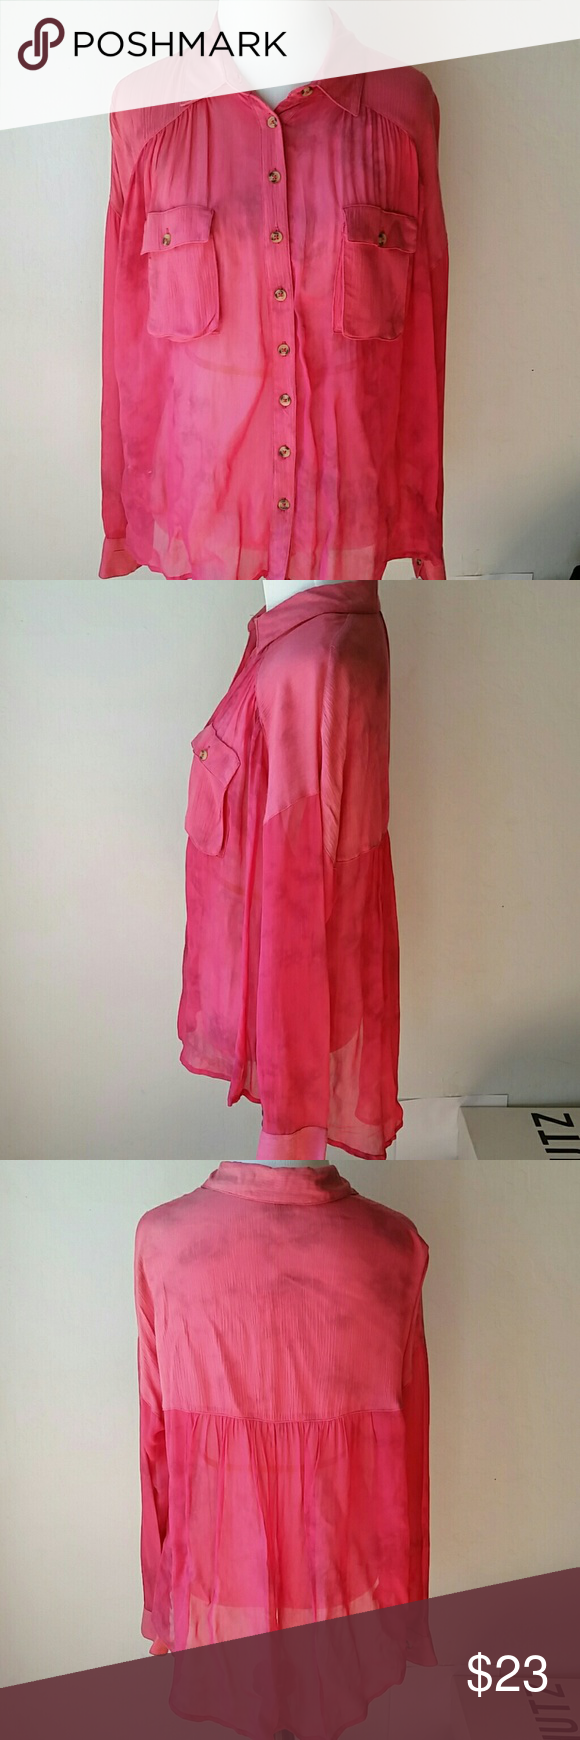 NWT BeautifulFree People  shirt Beautiful color,runs big,label.say xs,but  fit like size 4_6 in j crew size Free People Tops Blouses